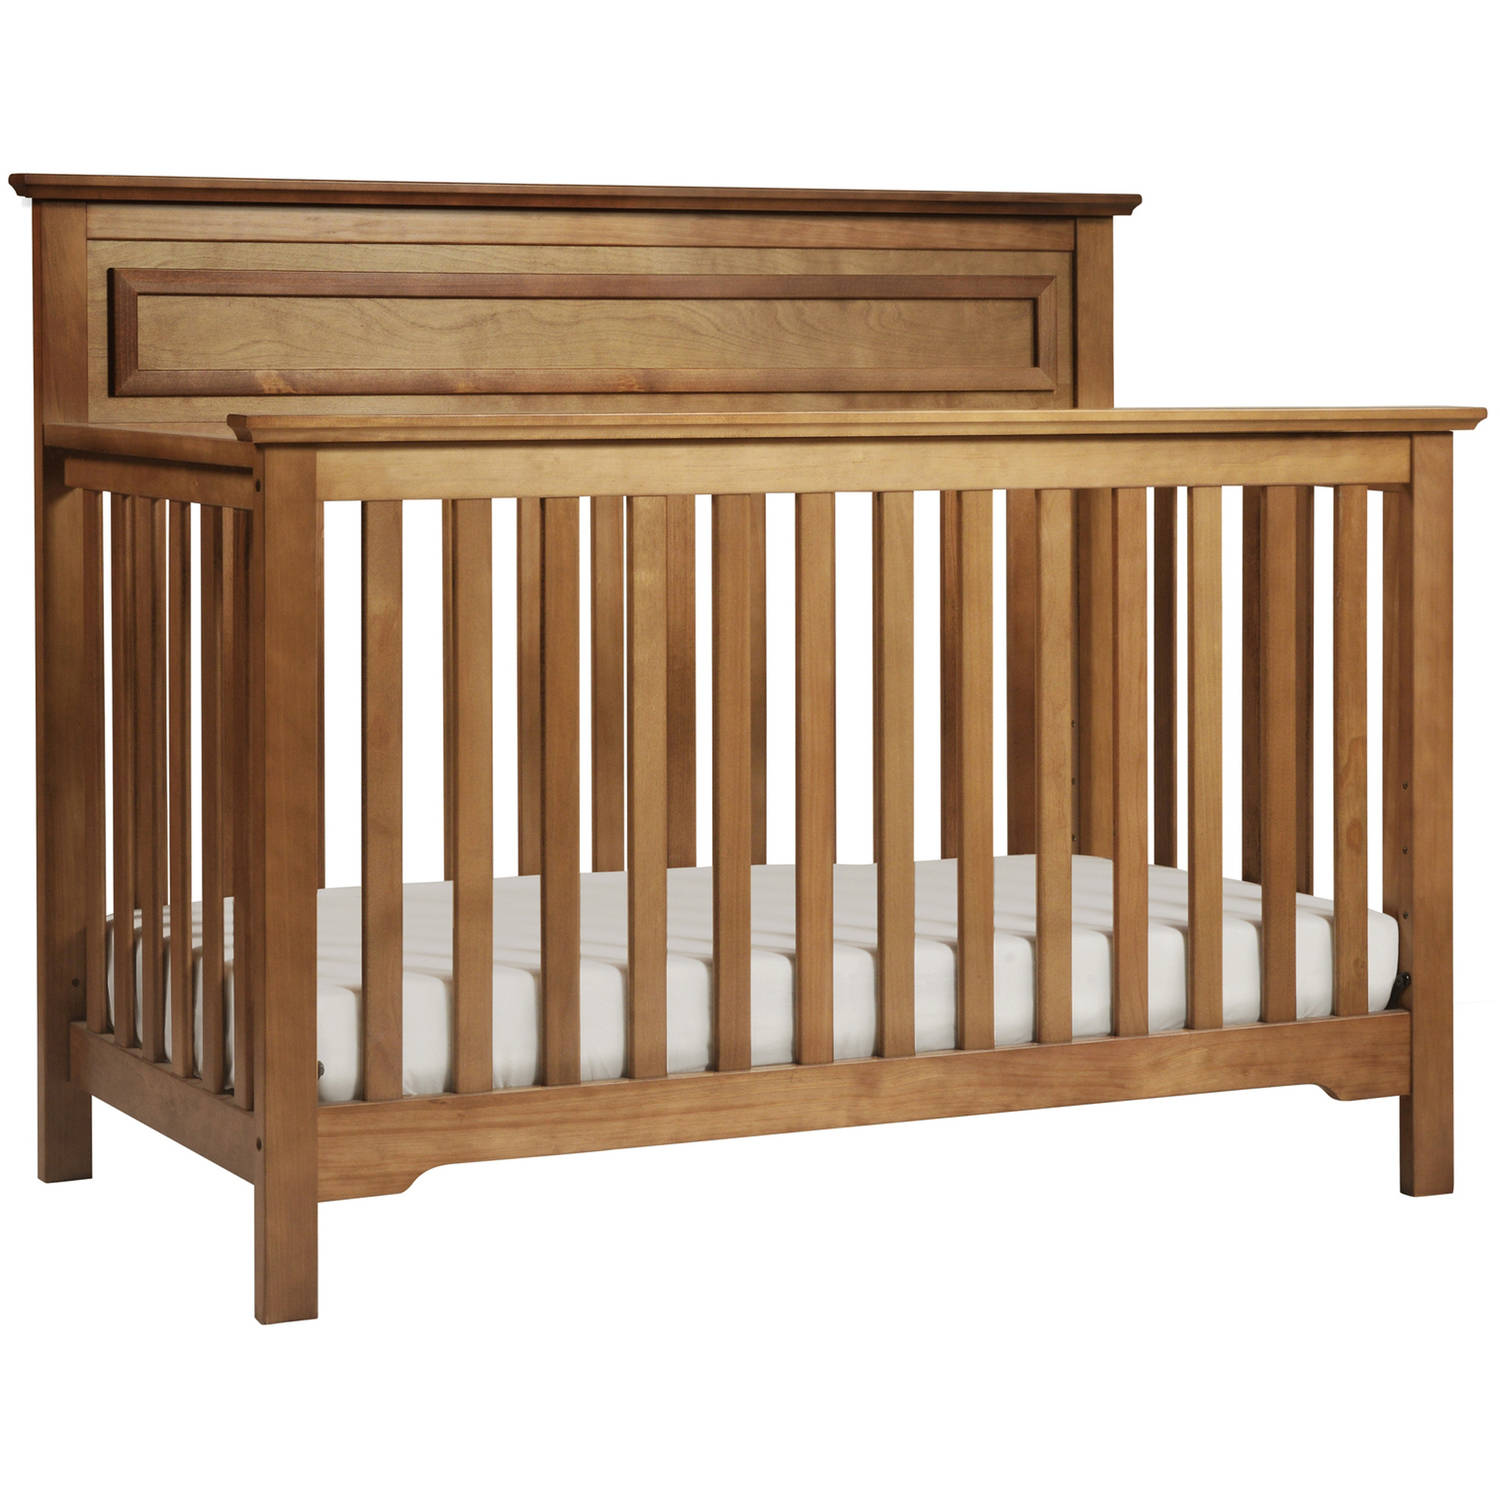 DaVinci Autumn 4-in-1 Convertible Crib - Chestnut